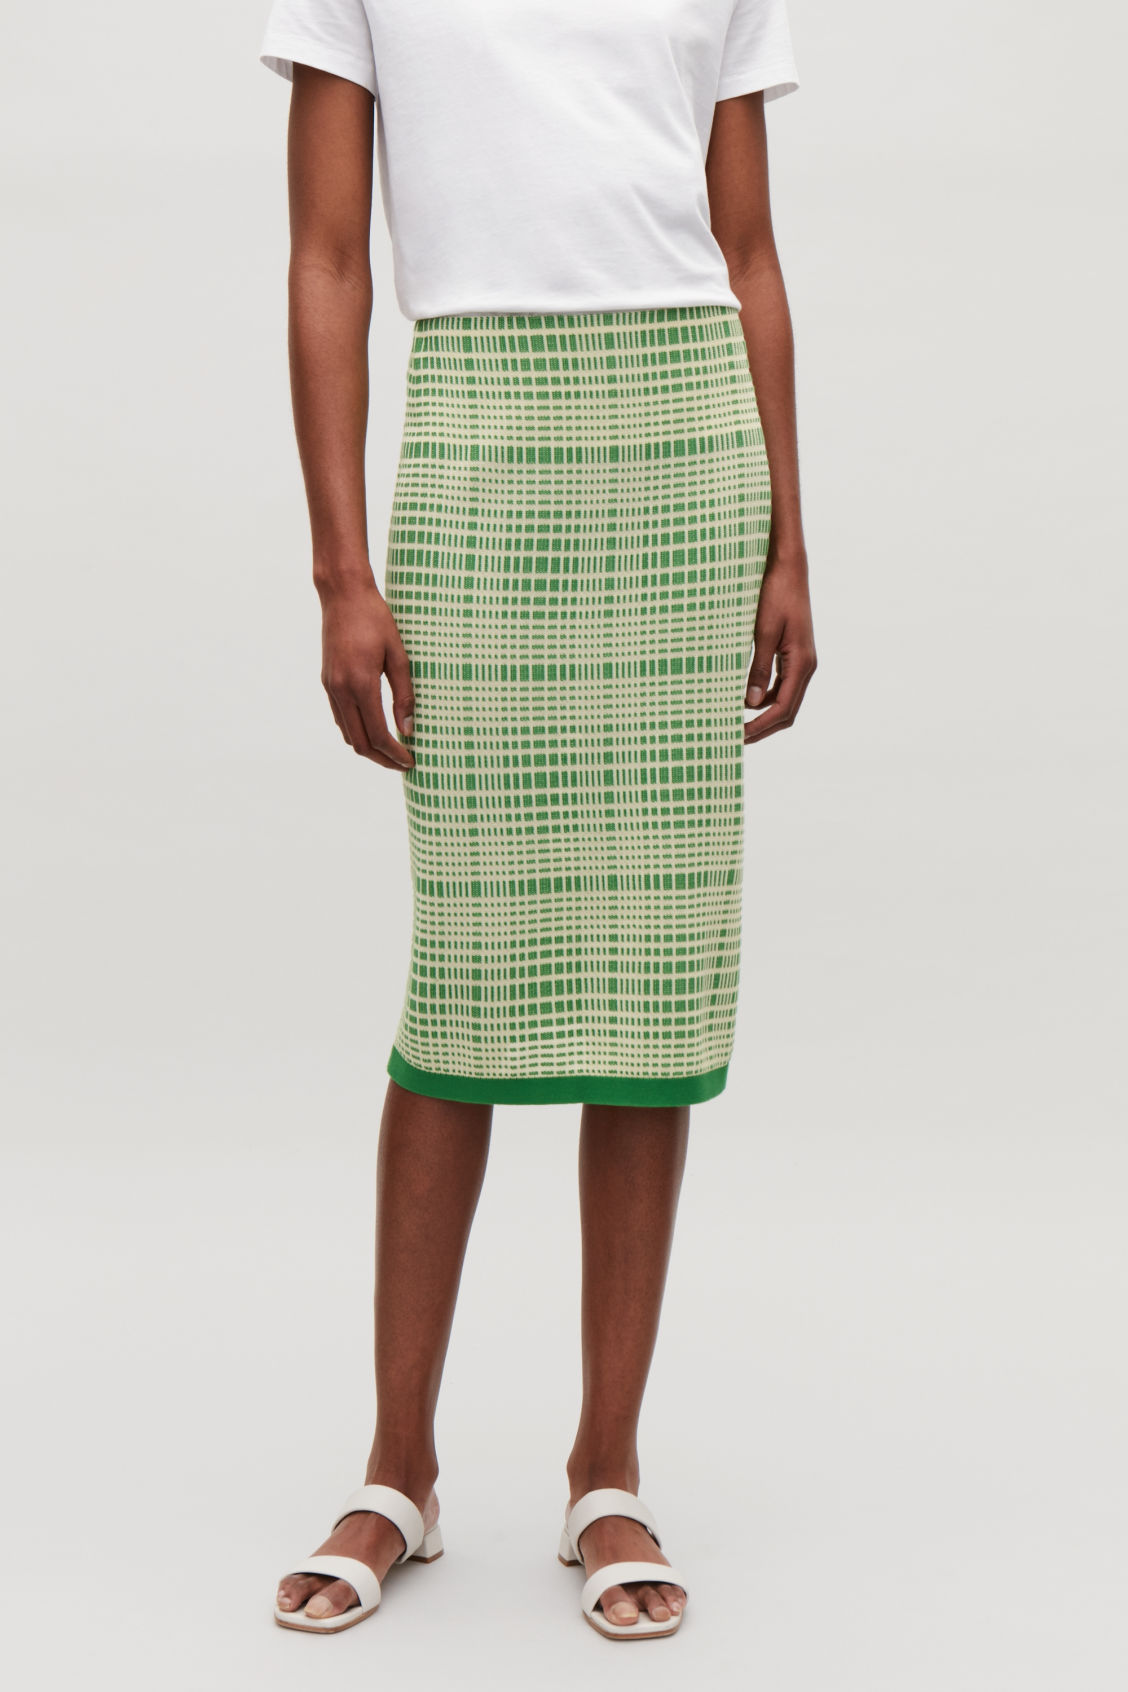 CHECKED JACQUARD KNIT SKIRT - Lime green - Skirts - COS